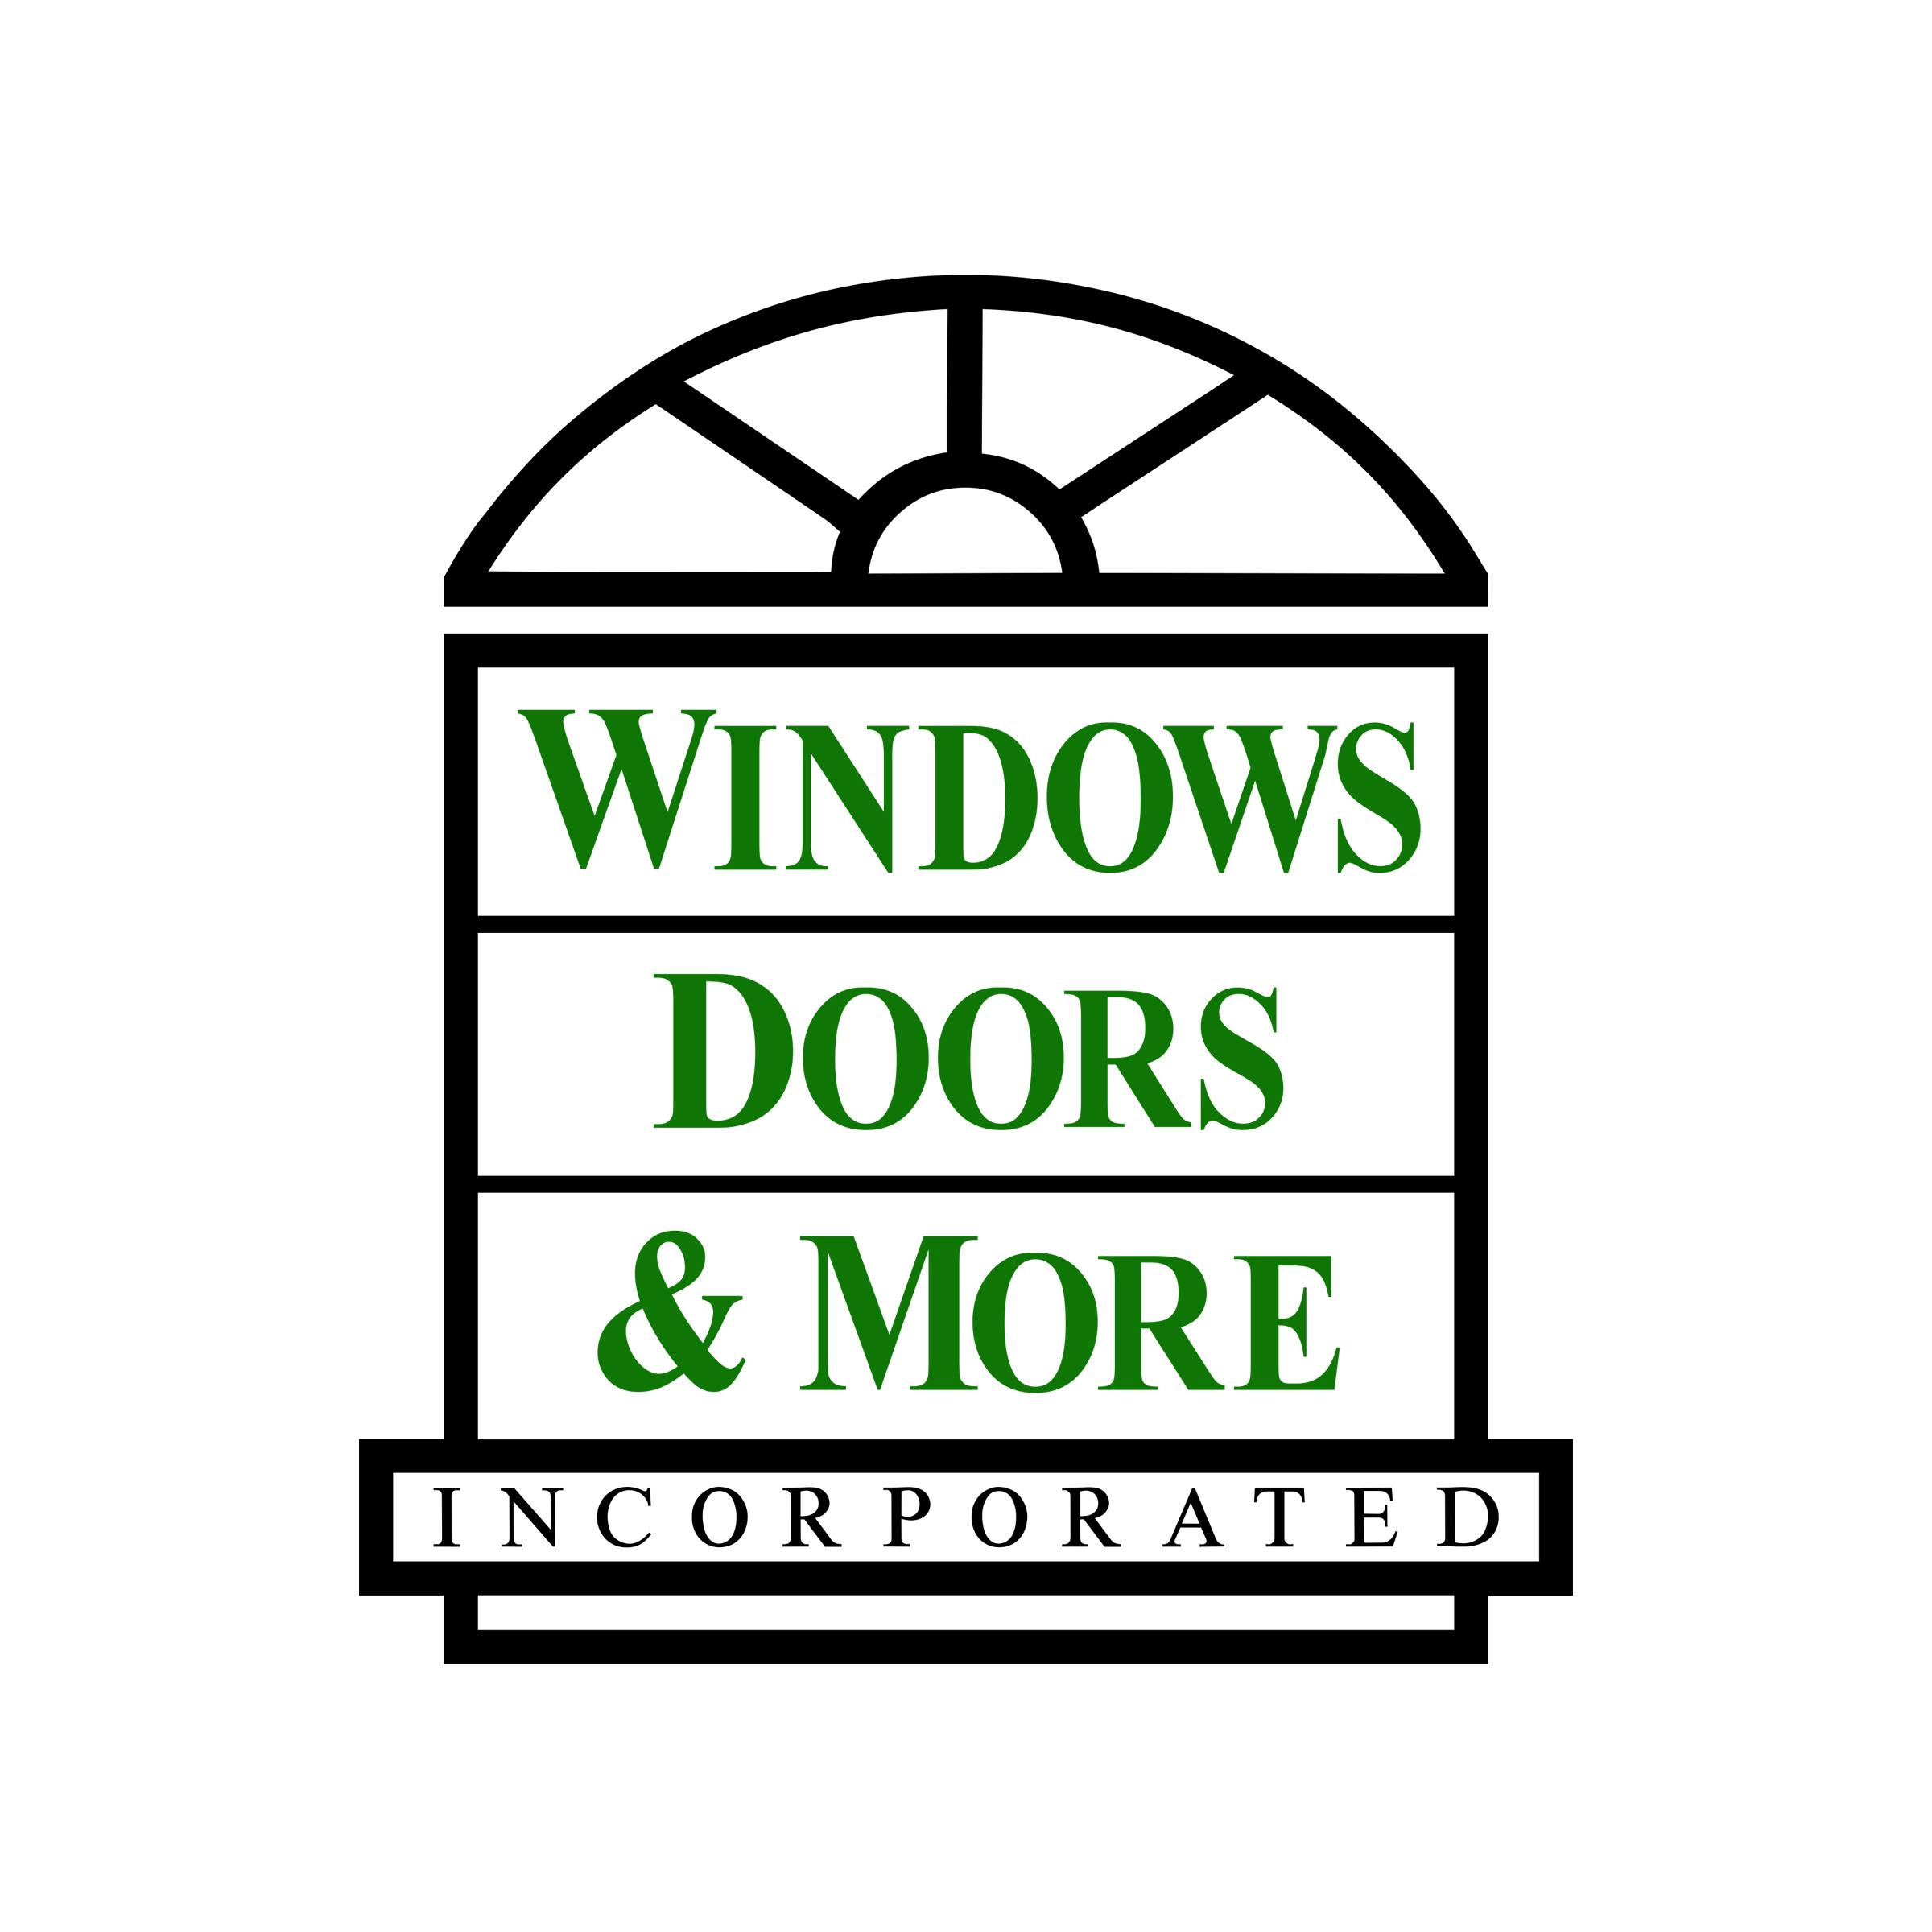 Windows doors more inc coupons near me in seattle for Windows and doors near me